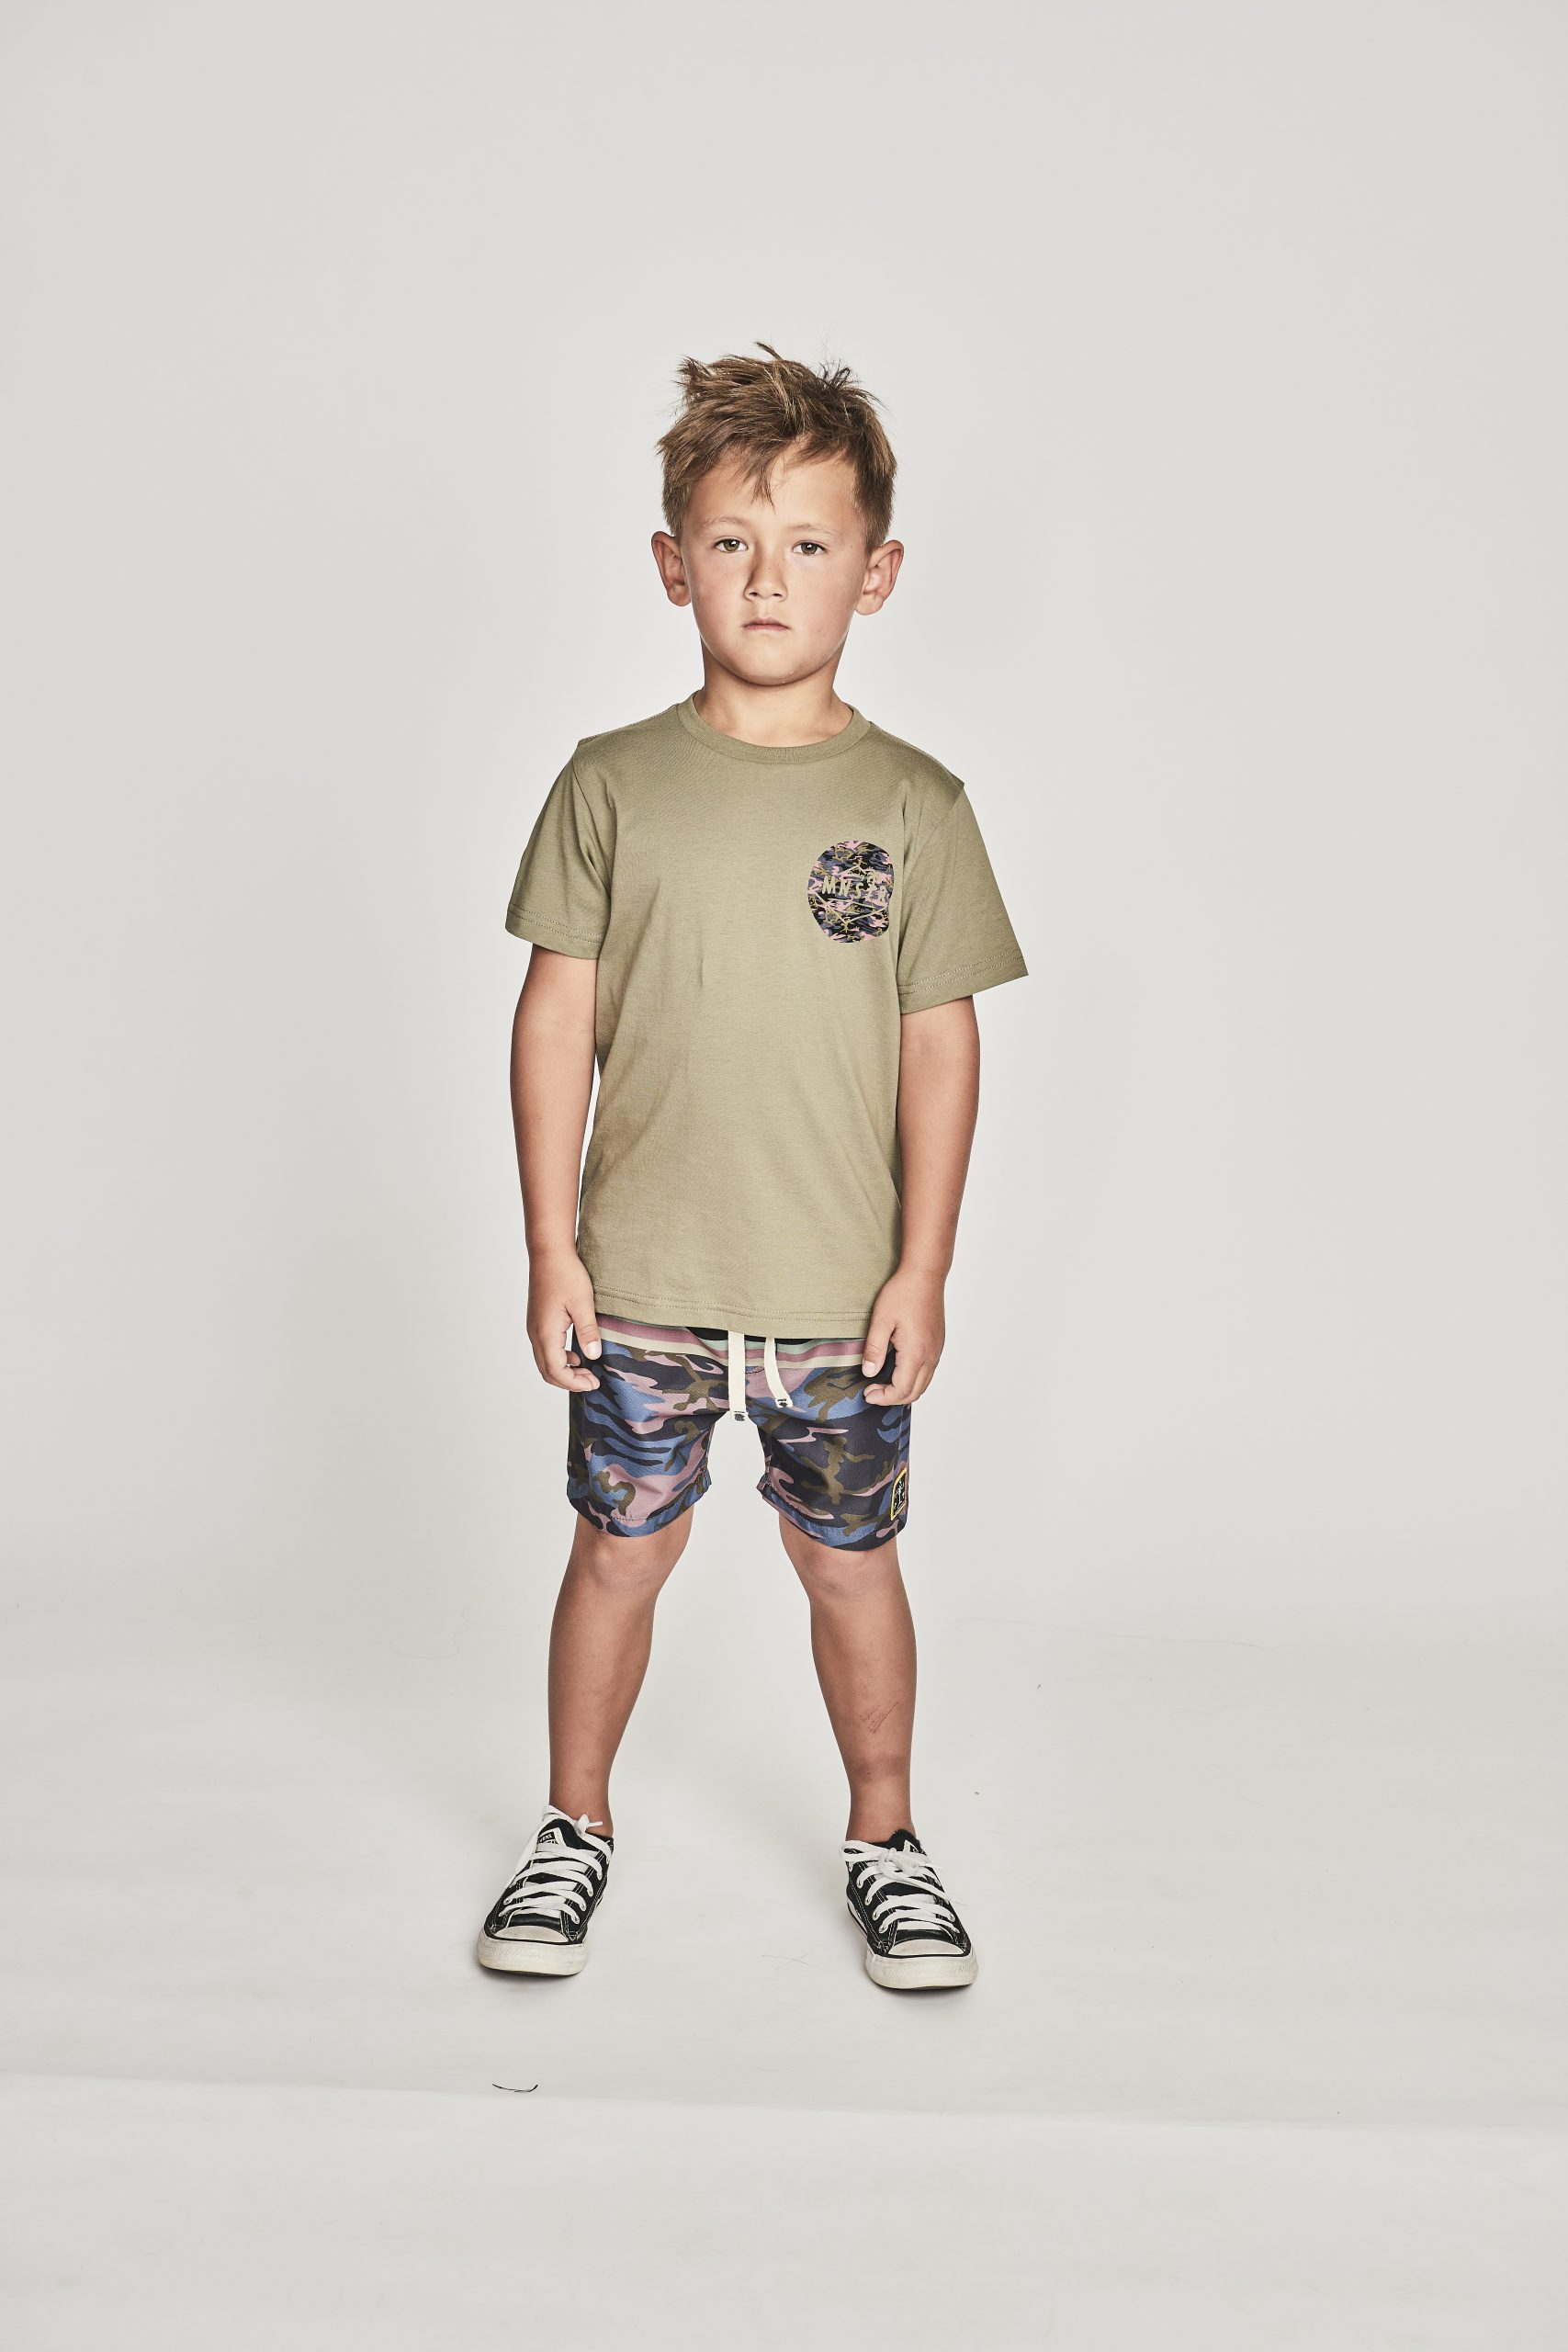 Munster Supply Co Tee (olive)